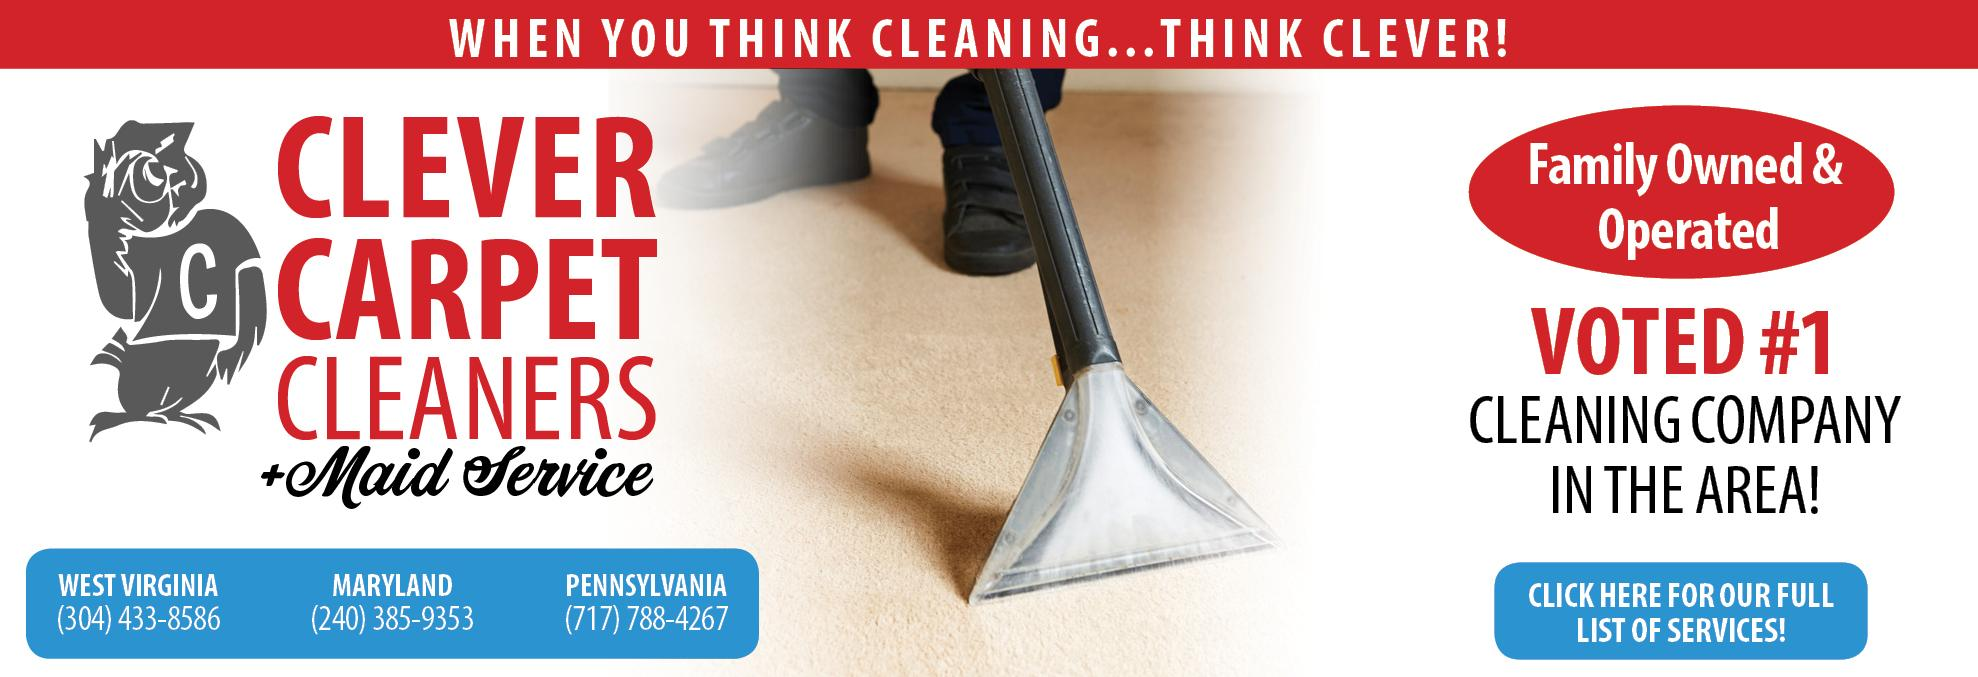 Clever Carpet Cleaning & Maid Service, Cleaning Service, House Cleaning, Carpet Cleaning